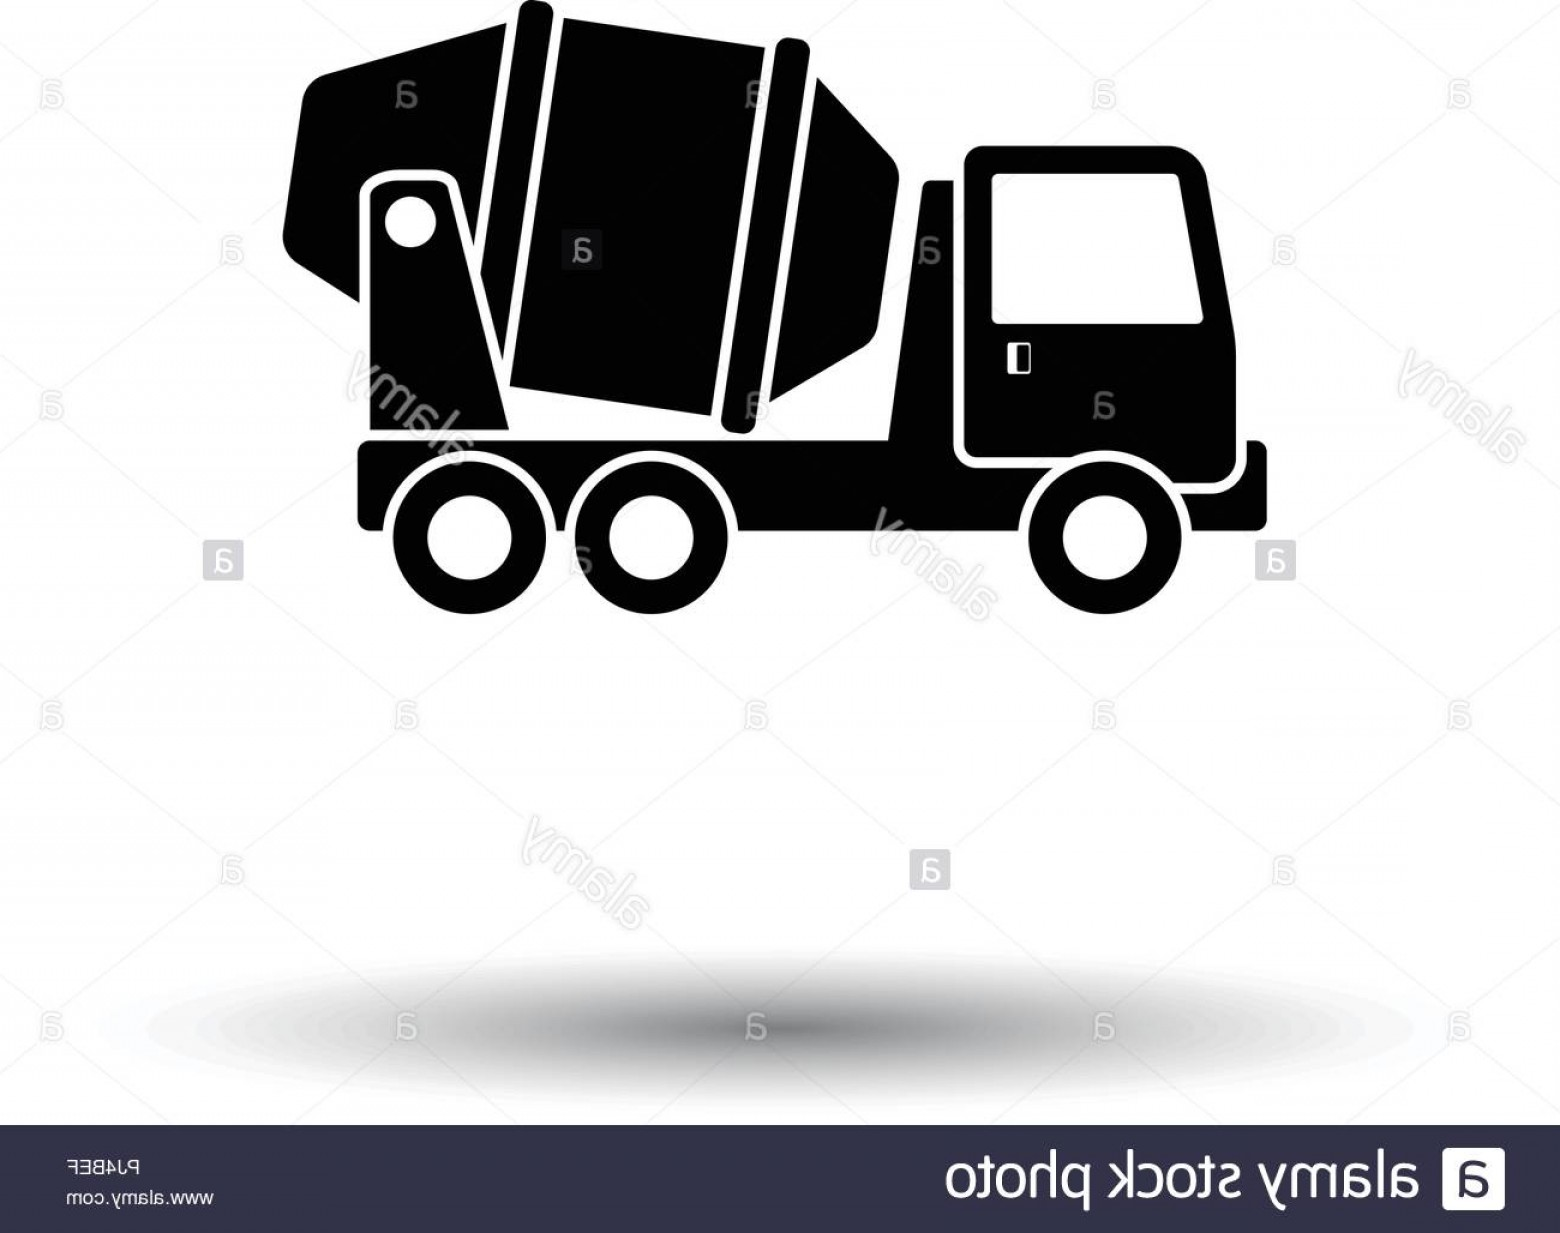 Vector Concrete Truck: Icon Of Concrete Mixer Truck White Background With Shadow Design Vector Illustration Image